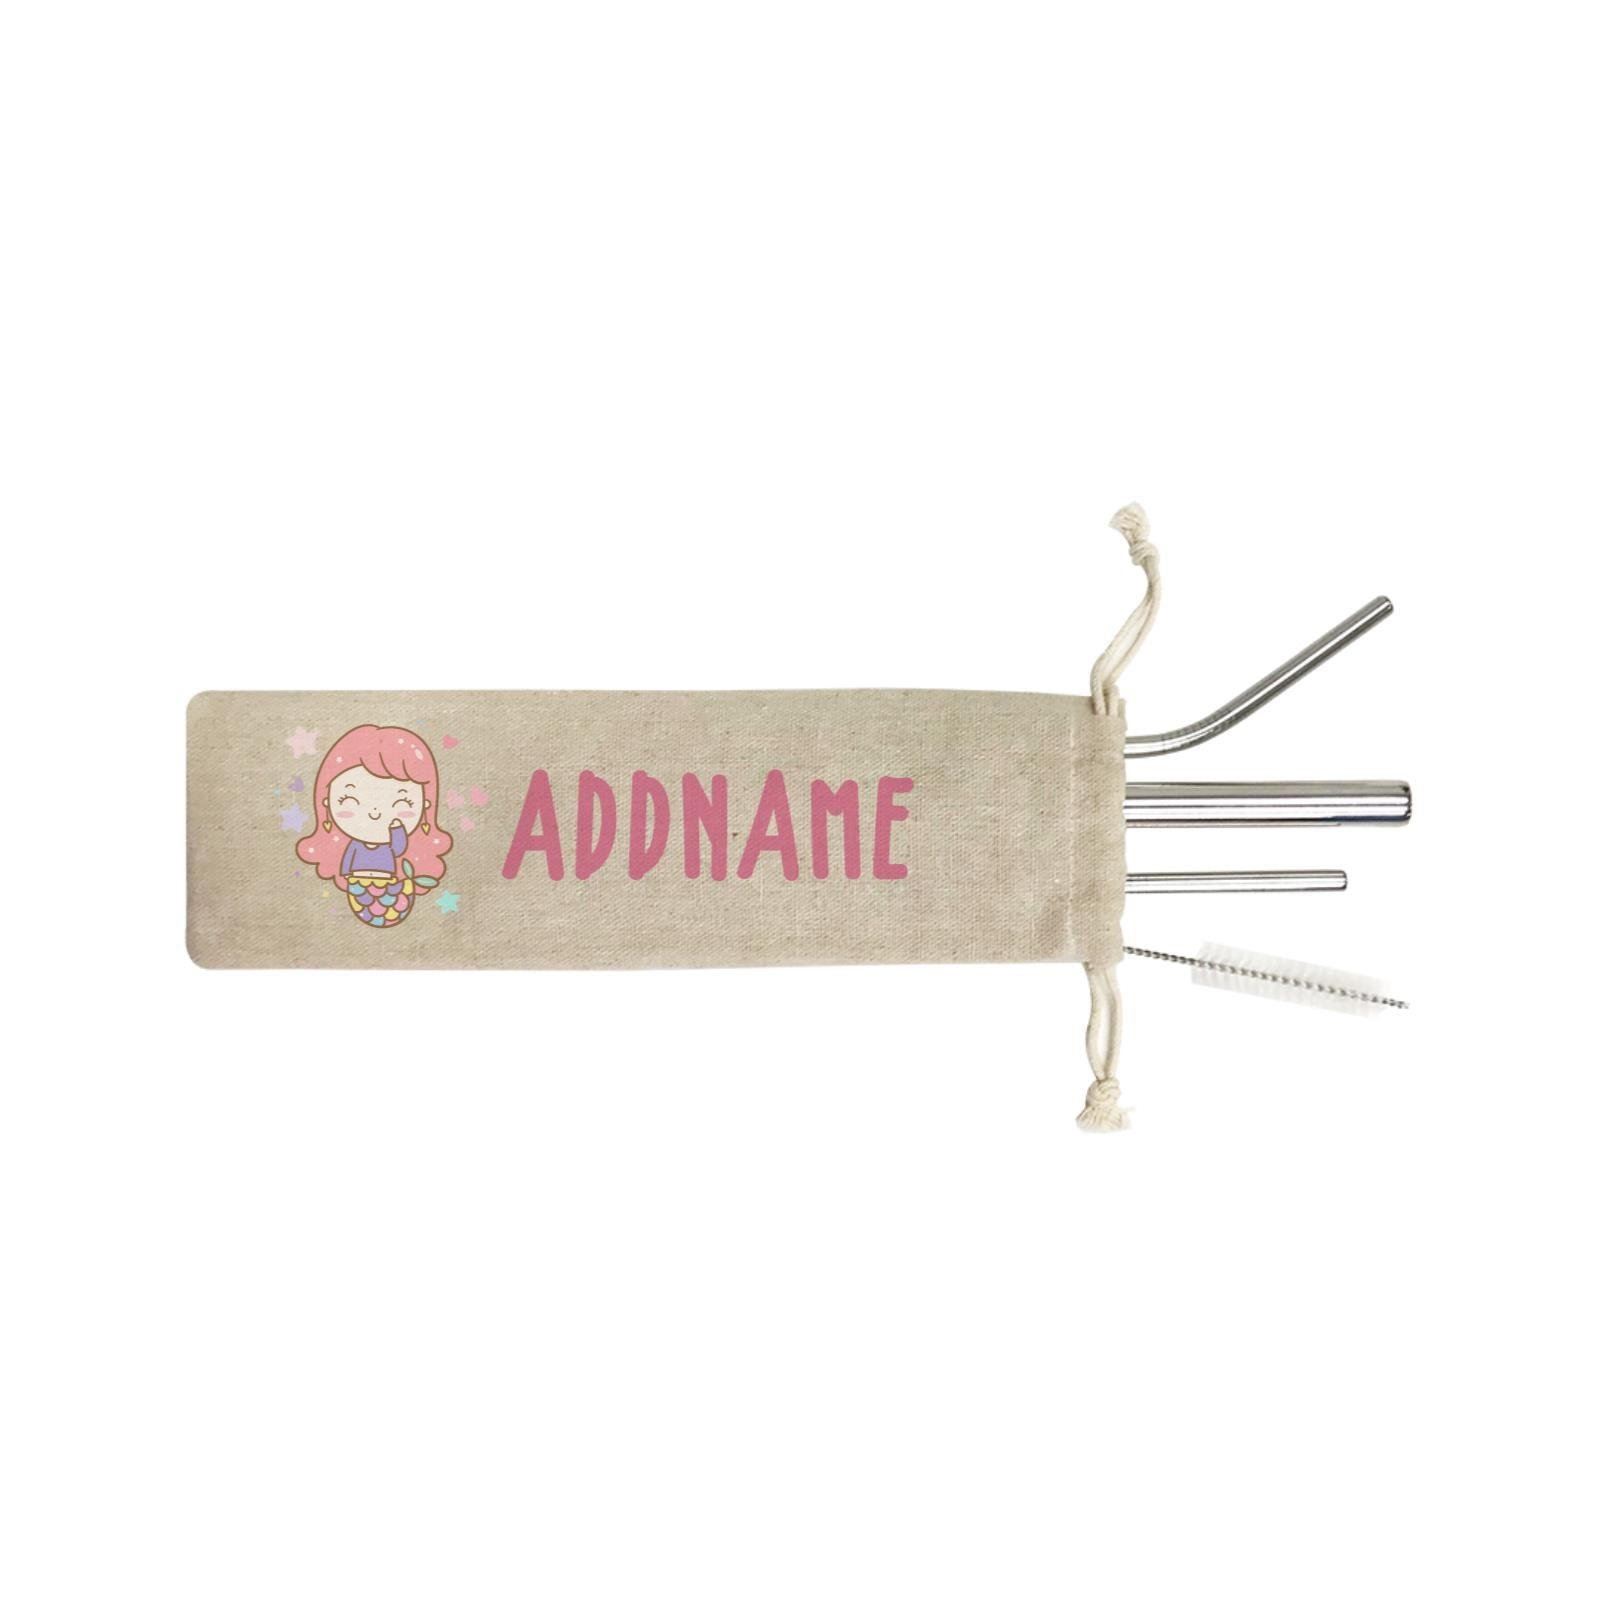 Unicorn And Princess Series Cute Happy Waving Mermaid Girl Addname SB 4-In-1 Stainless Steel Straw Set in Satchel